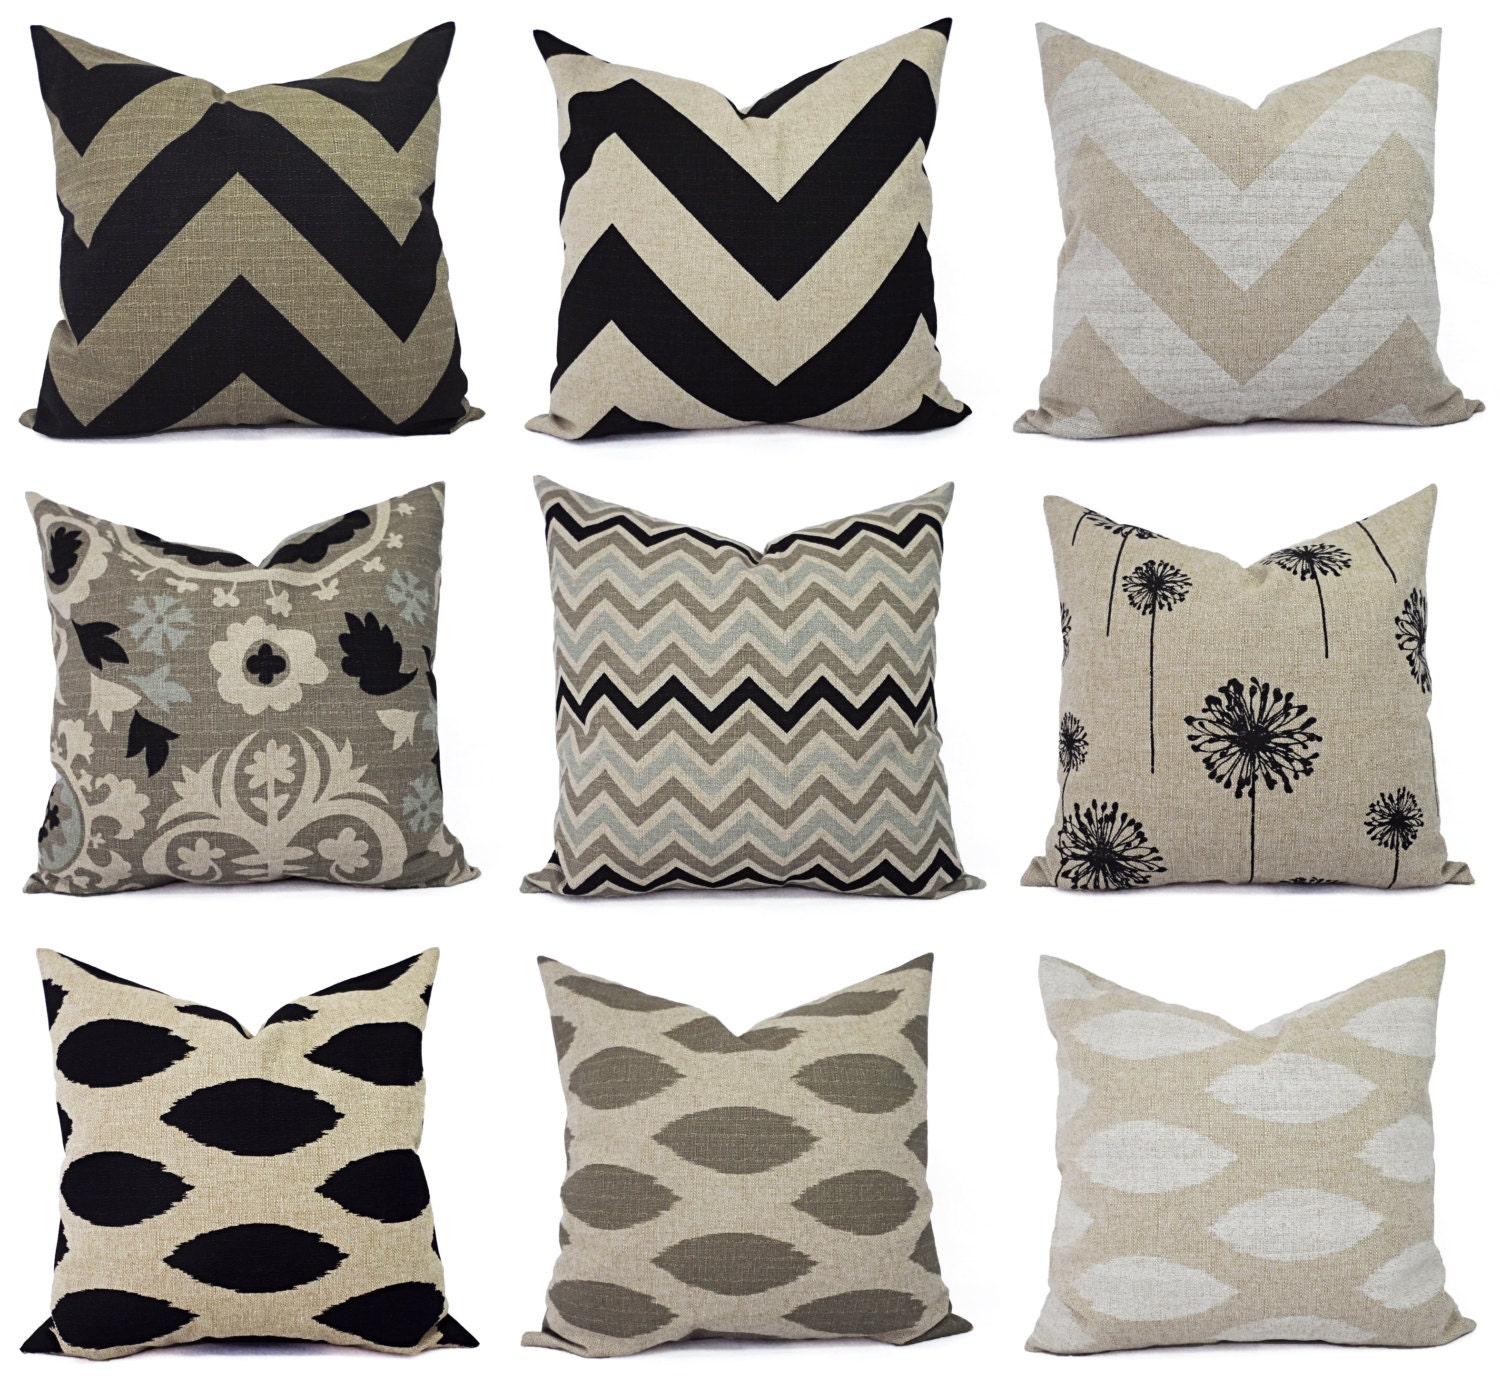 Brown Decorative Throw Pillows : One Decorative Throw Pillow Cover Brown and by CastawayCoveDecor